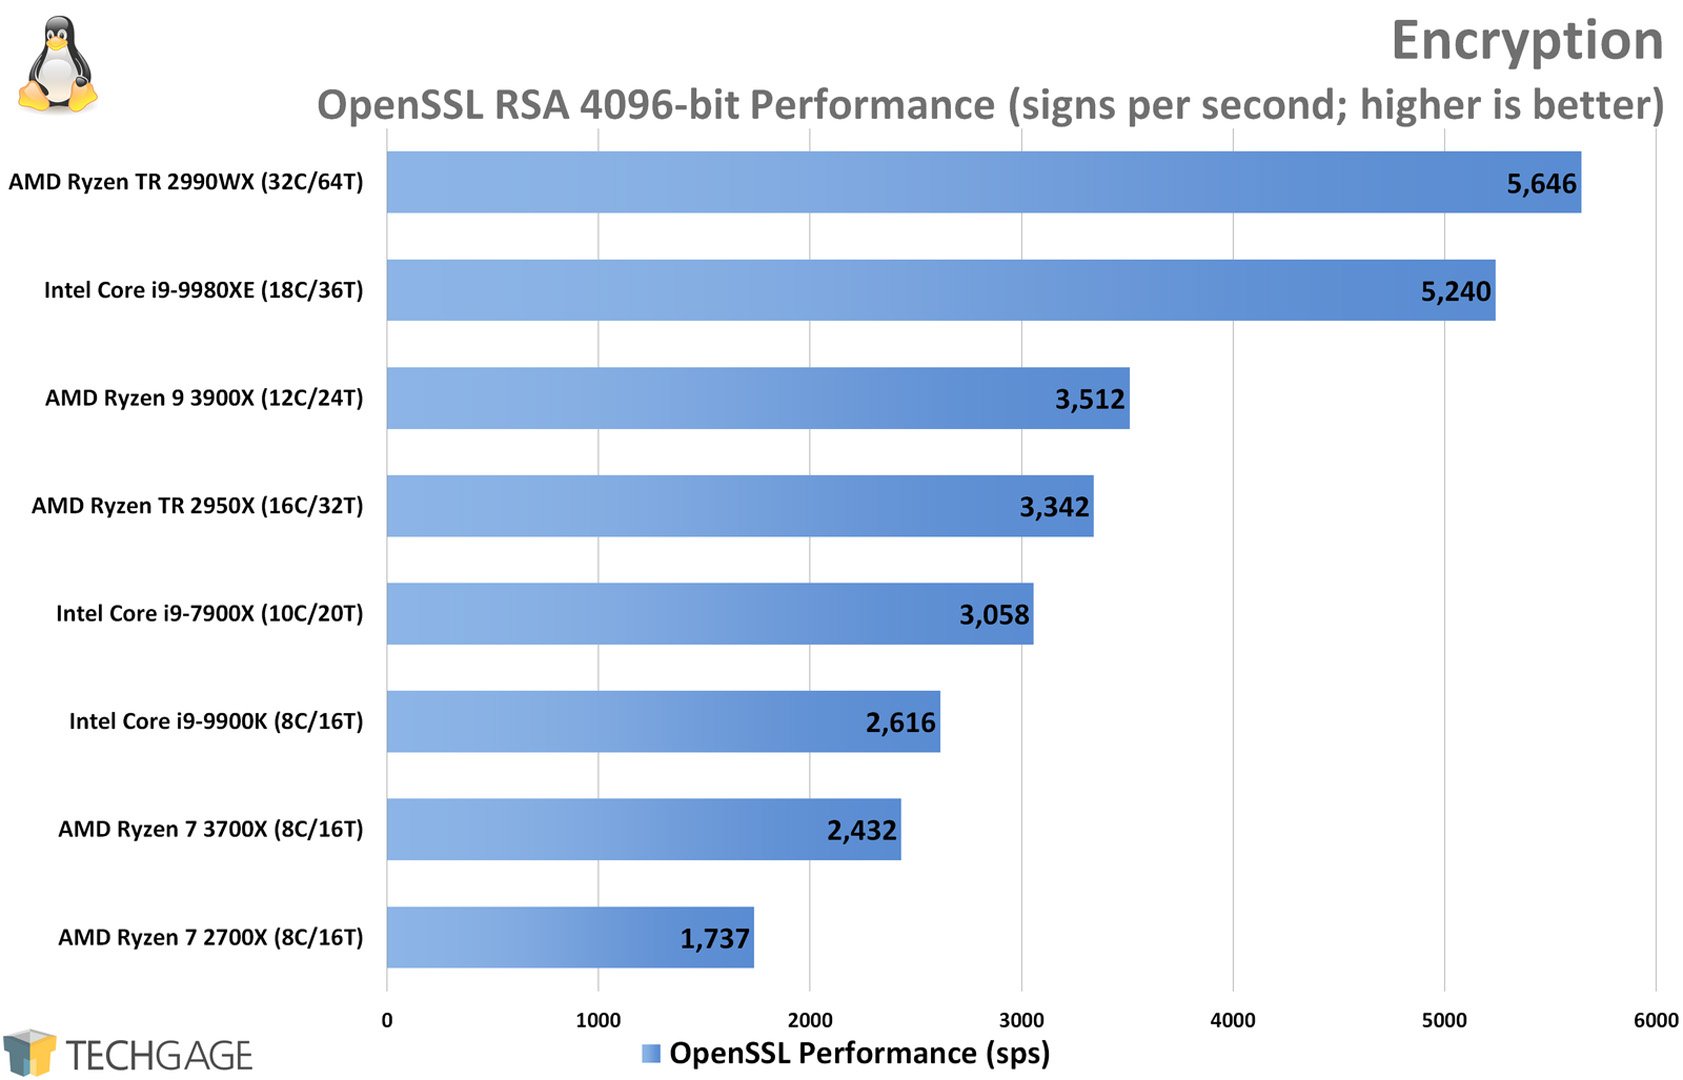 OpenSSL Encryption Performance (Linux, AMD Ryzen 9 3900X and 7 3700X)